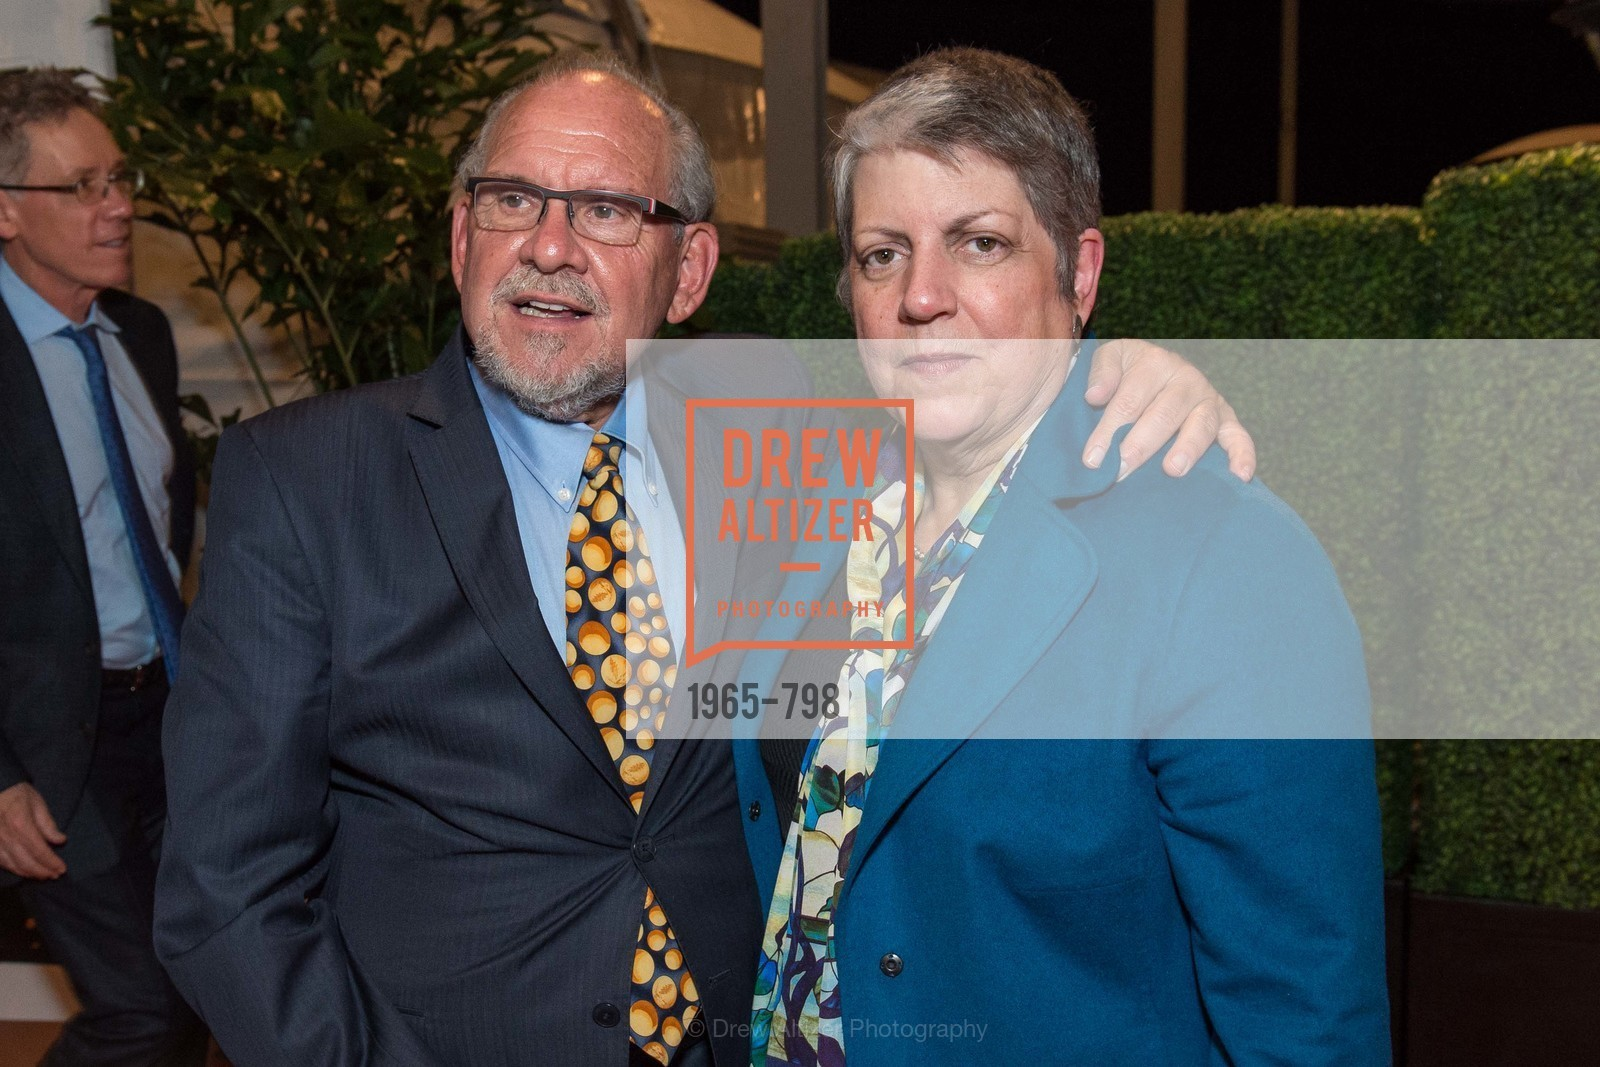 Jon Foley, Janet Napolitano, CALIFORNIA ACADEMY OF SCIENCES - Big Bang Gala 2015, US, April 24th, 2015,Drew Altizer, Drew Altizer Photography, full-service agency, private events, San Francisco photographer, photographer california